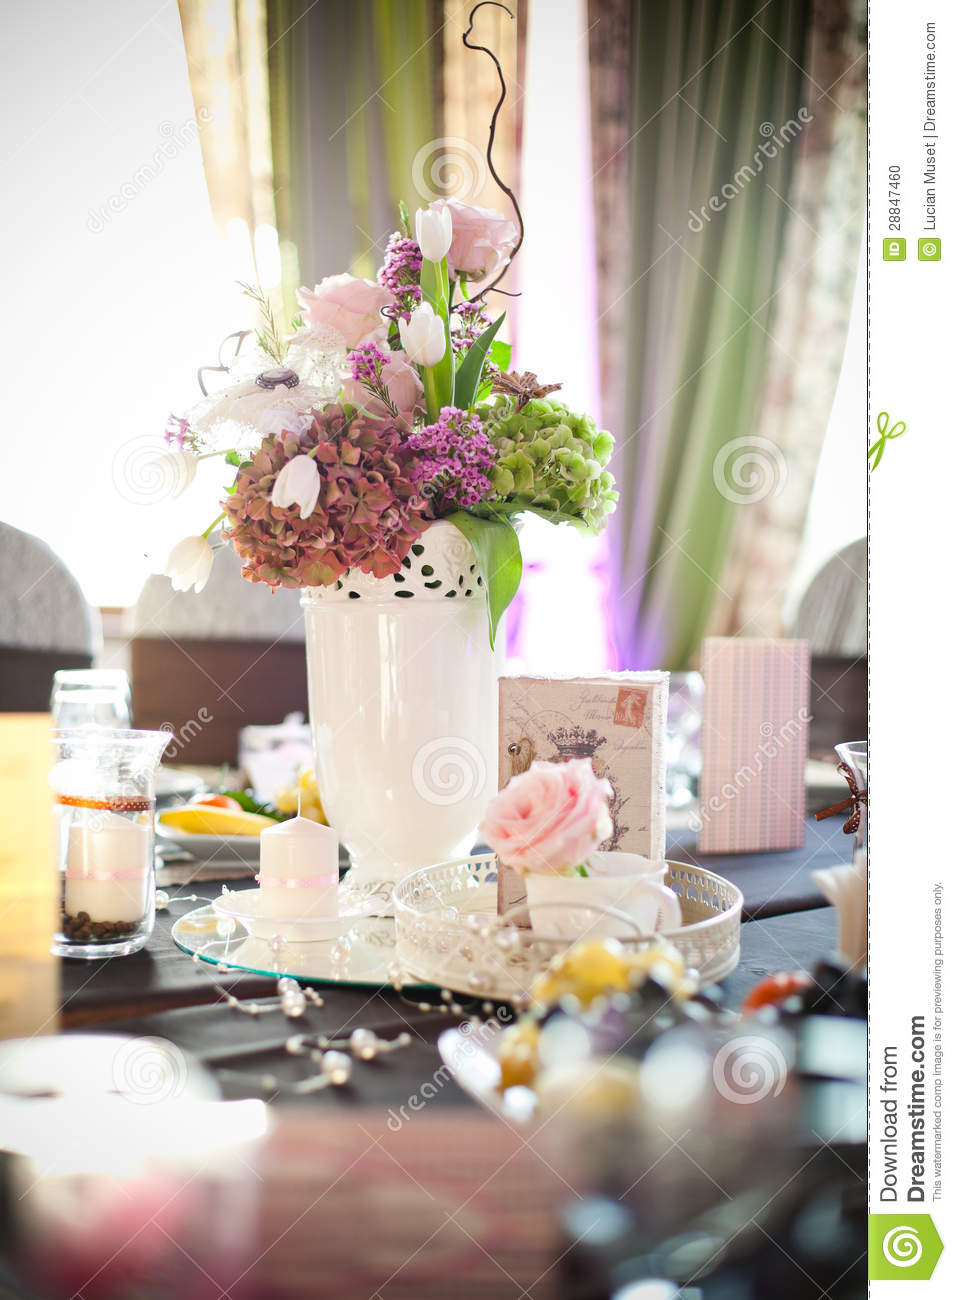 Party table setting stock photo image 28847460 - Table setting for a party ...